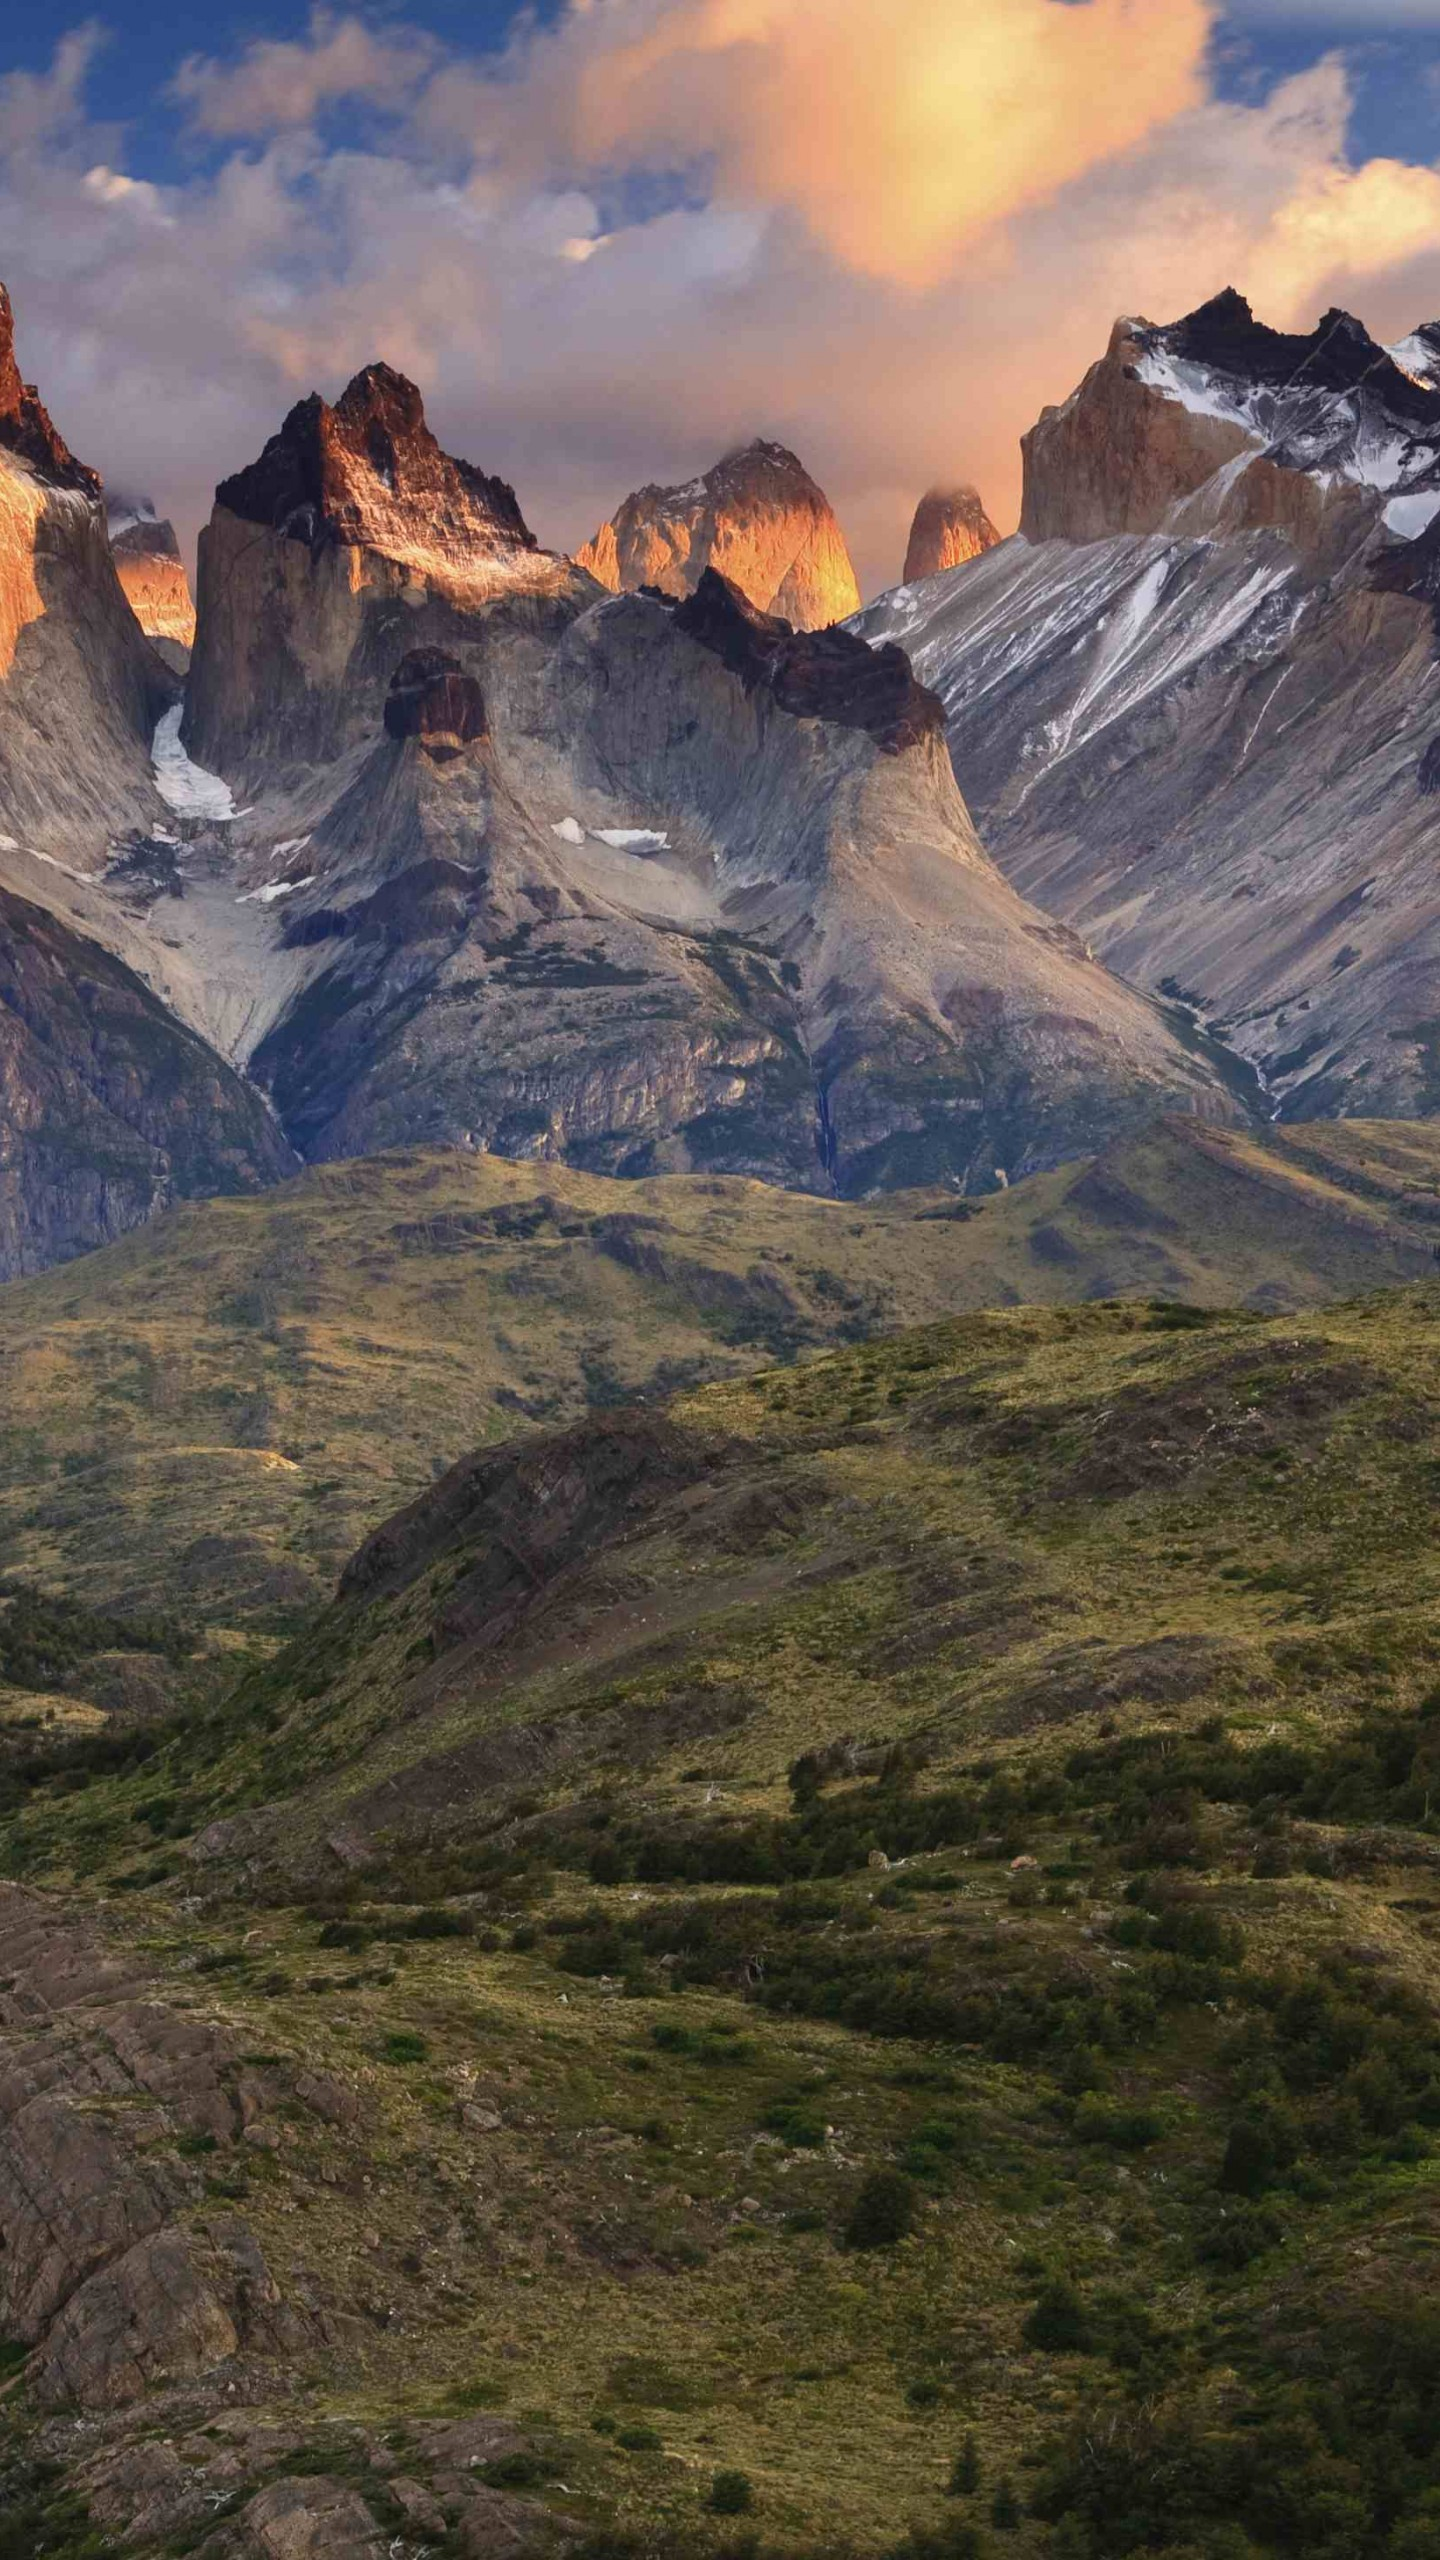 Beautiful Quotes Wallpaper For Facebook Wallpaper Torres Del Paine 4k Hd Wallpaper National